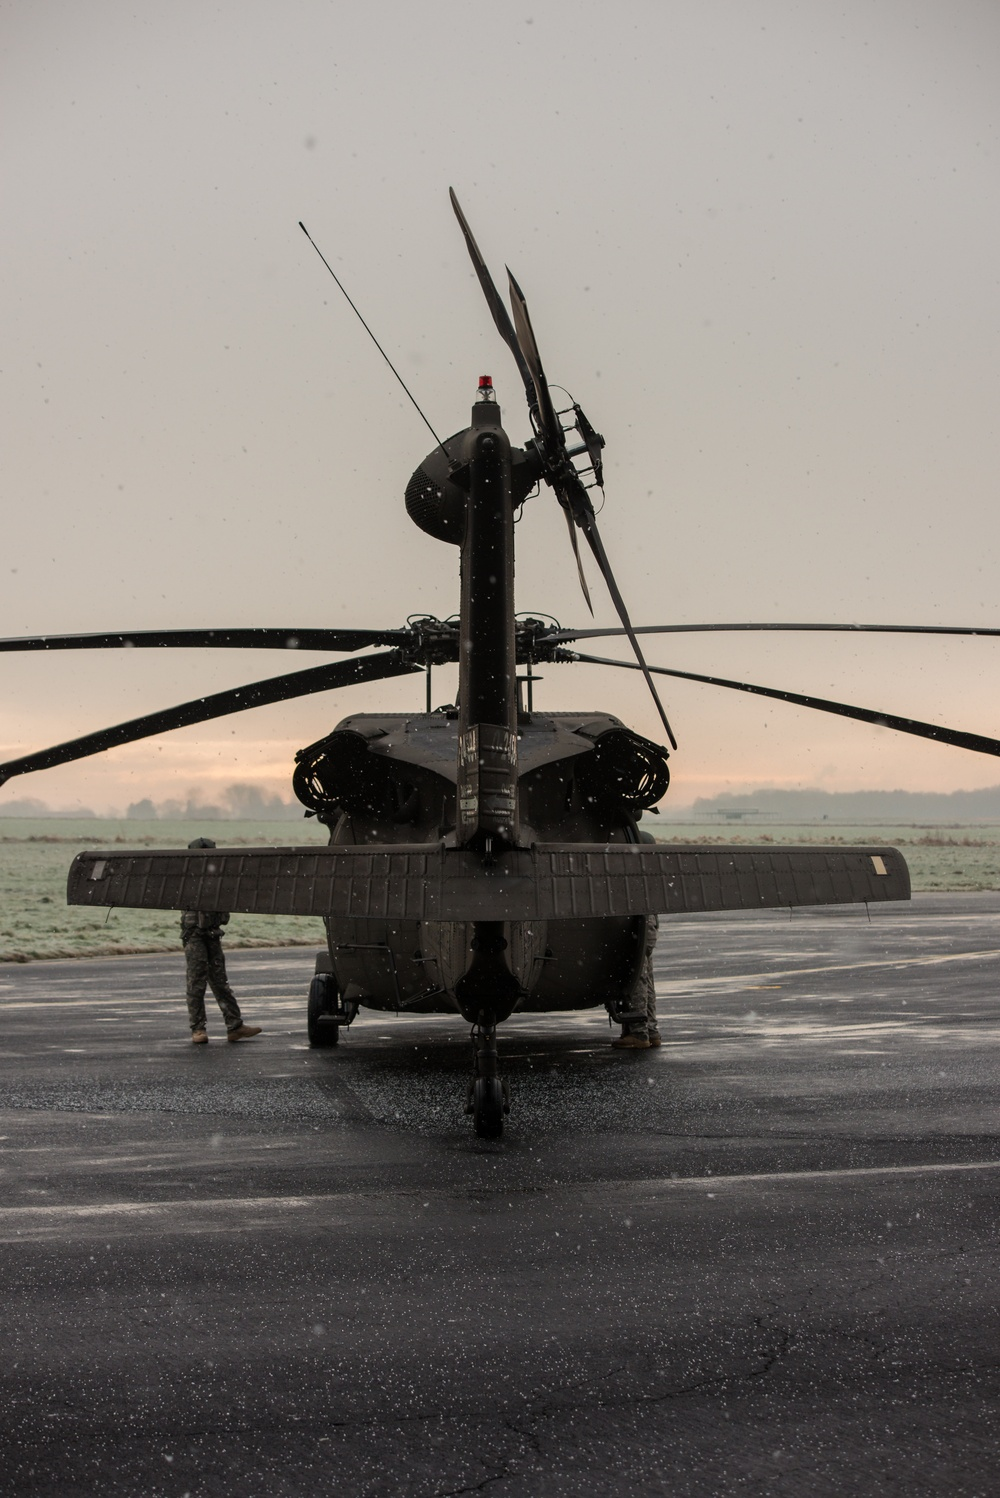 Rear view of a UH-60A Black Hawk helicopter